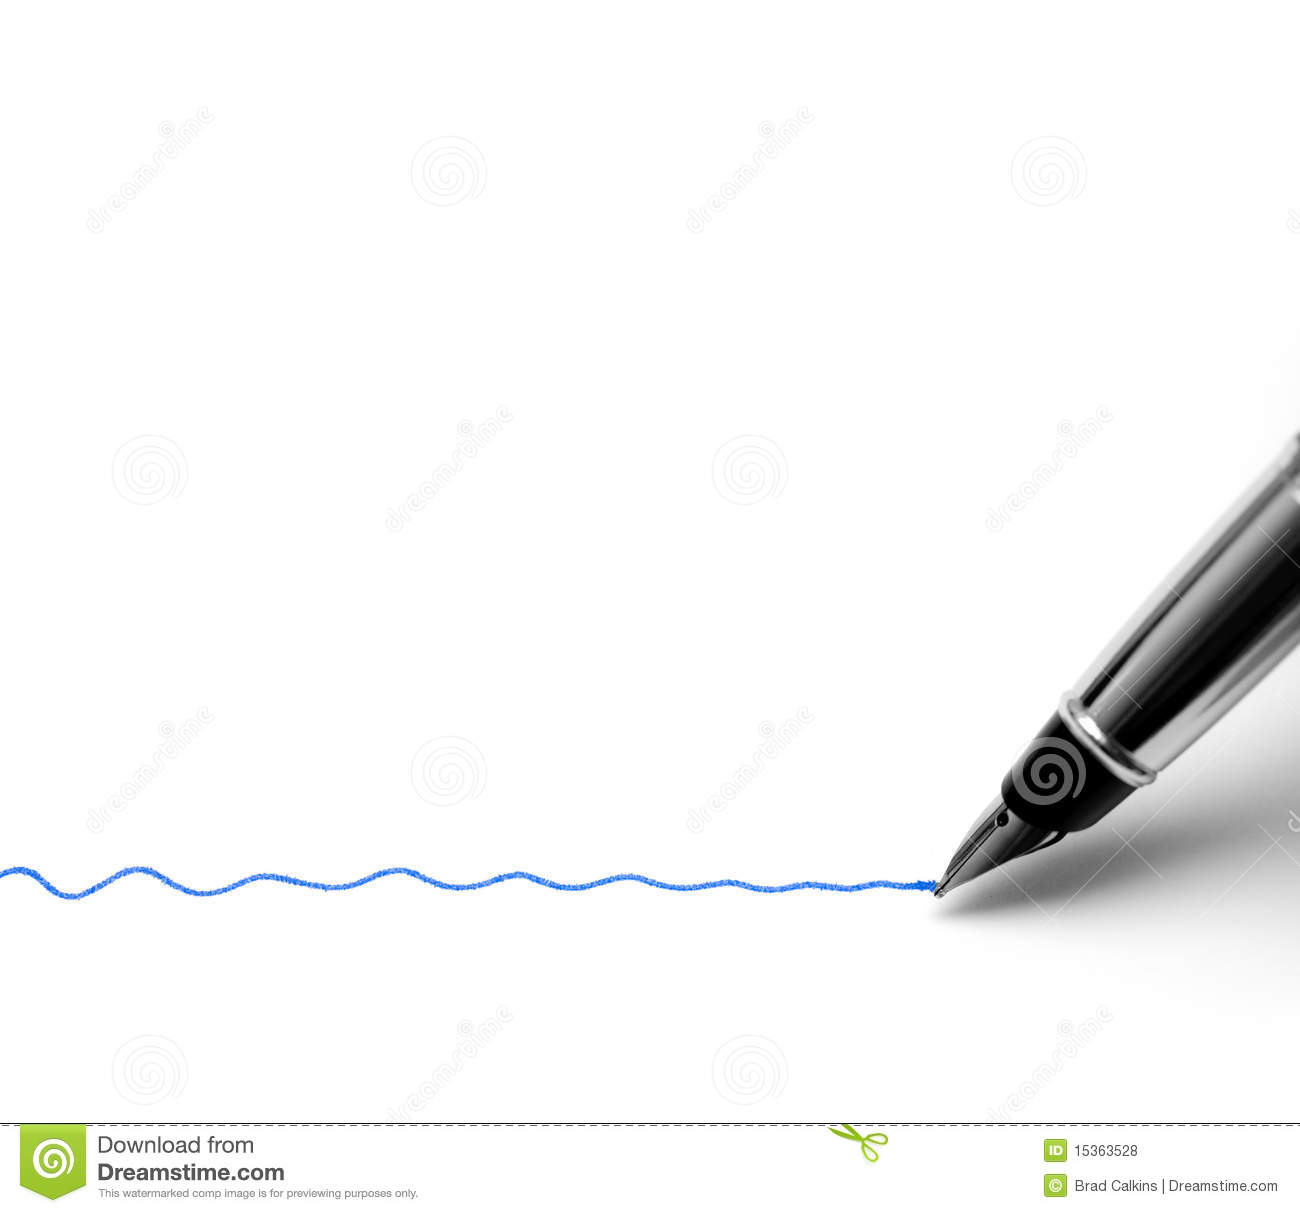 Drawing Lines With The Pen Tool : Fountain pen stock photo image of underline isolated